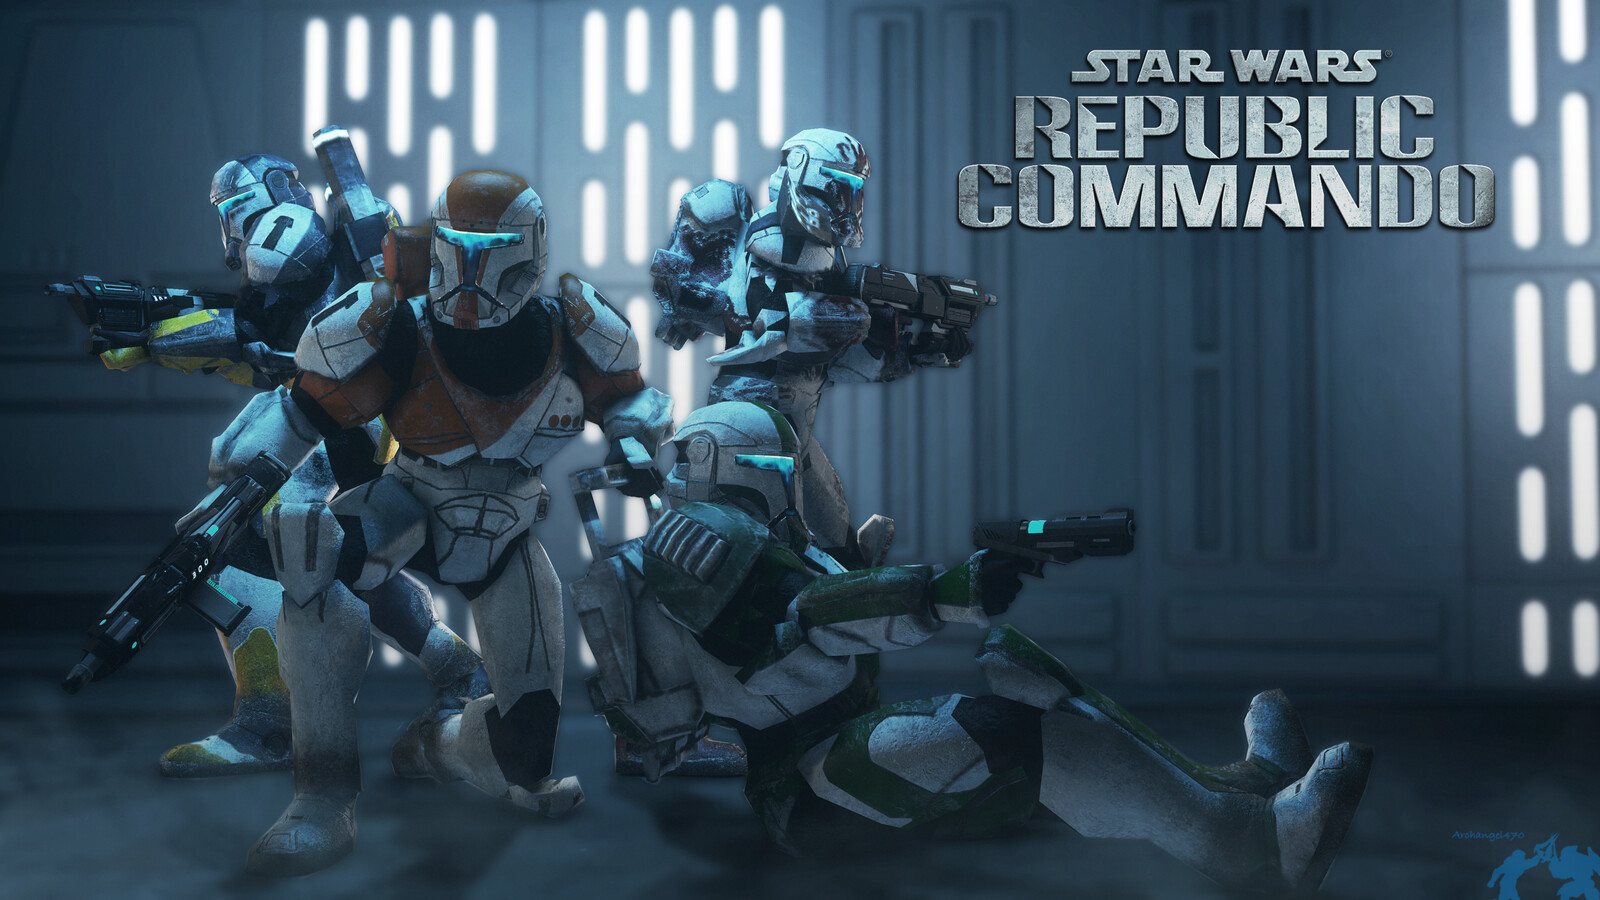 Artstation Star Wars Republic Commando 4k Wallpaper Ben Walker